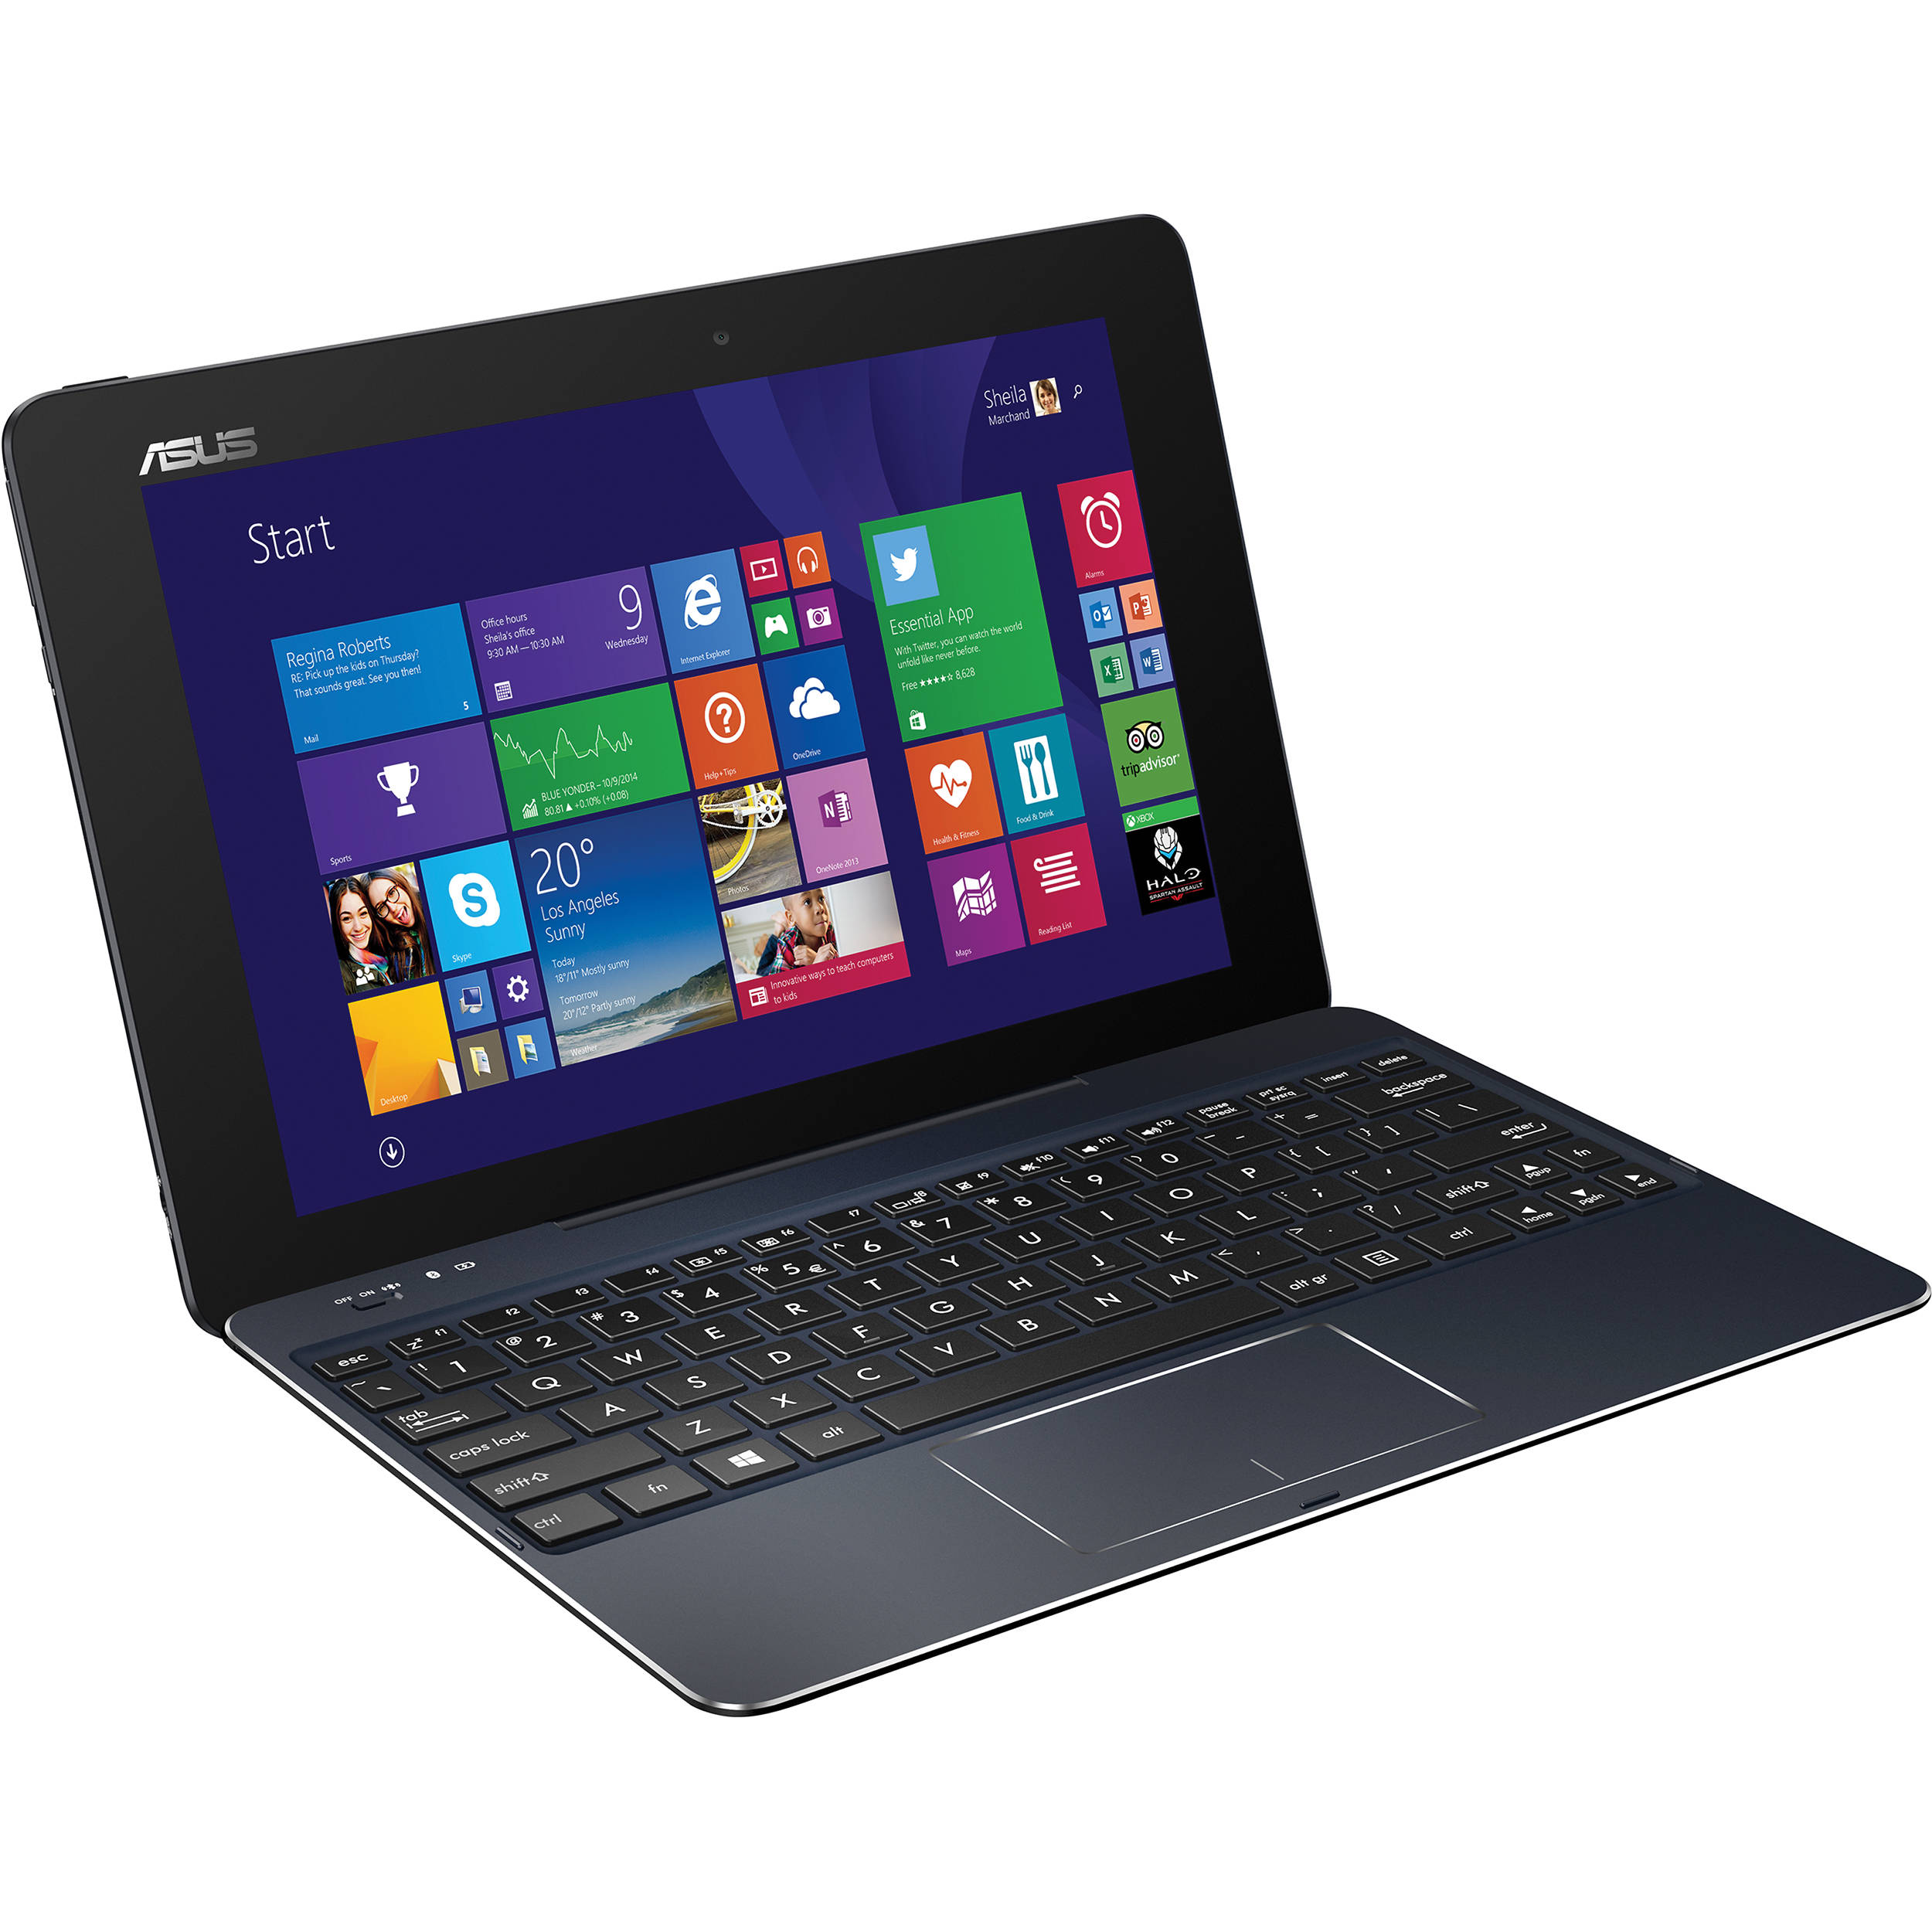 Asus 64gb t100 chi transformer book t100chi c1 bk b h photo - Asus transformer t100 ports ...